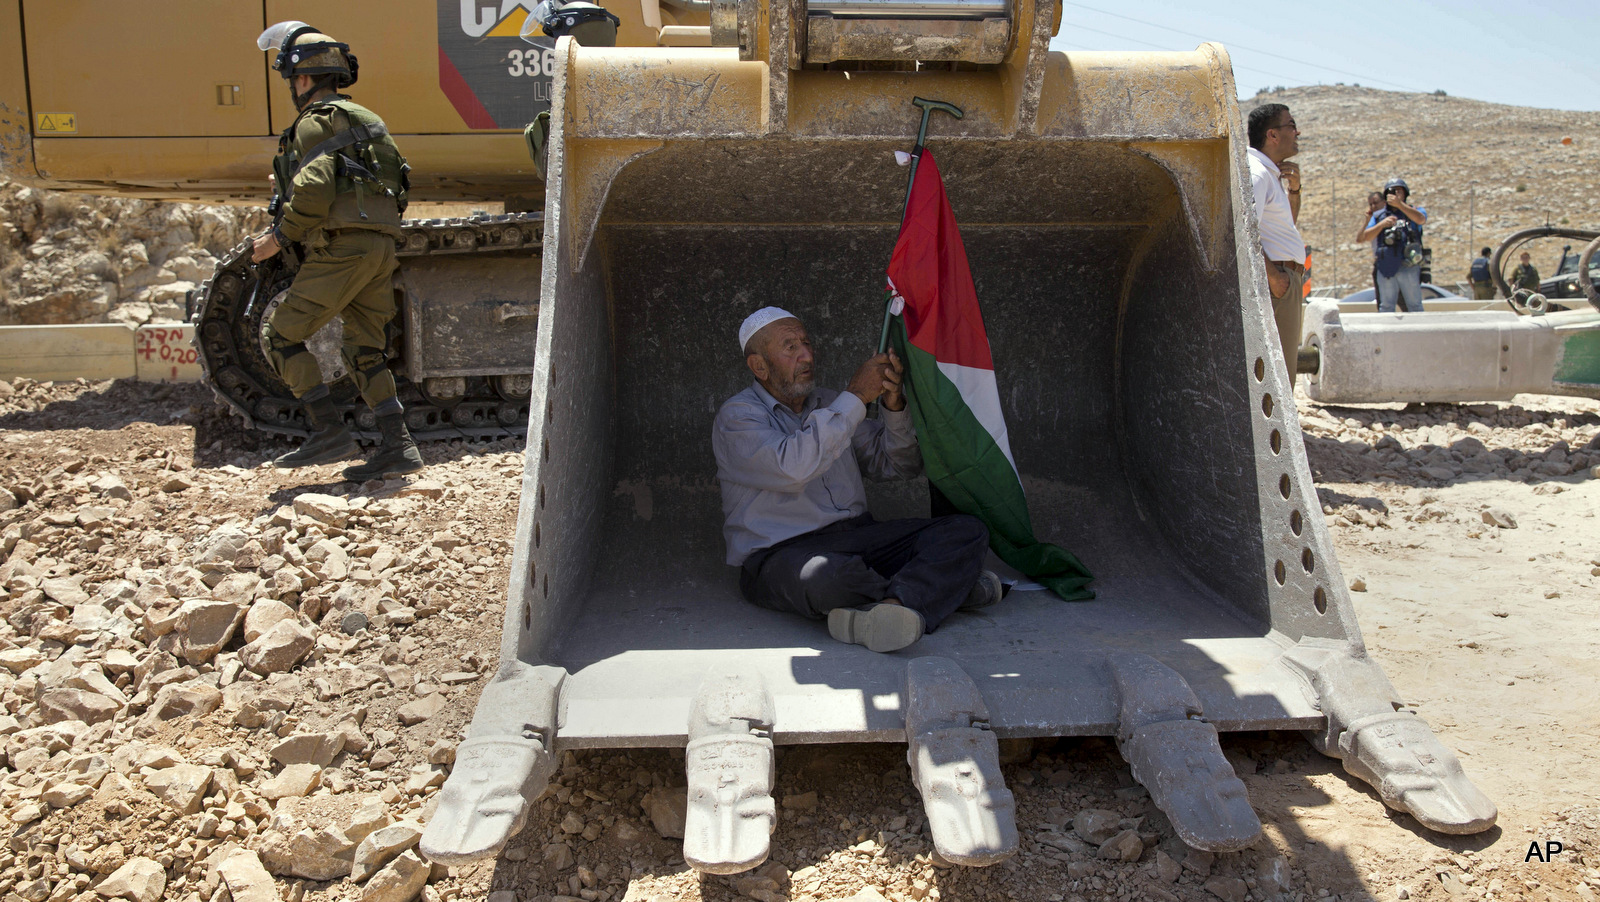 A Palestinian man tries to stop work by an Israeli bulldozer during a protest outside the village of Deir Qaddis, near the West Bank city of Ramallah, Wednesday, July 13, 2016. Dozens of Palestinians demonstrated Wednesday in front of Israeli bulldozers that were bulldozing land outside Deir Qaddis village near Ramallah for an apparent plan to expand a nearby Jewish settlement. The protesters forced the bulldozers to stop, but residents said they resumed work after the protesters left the area.